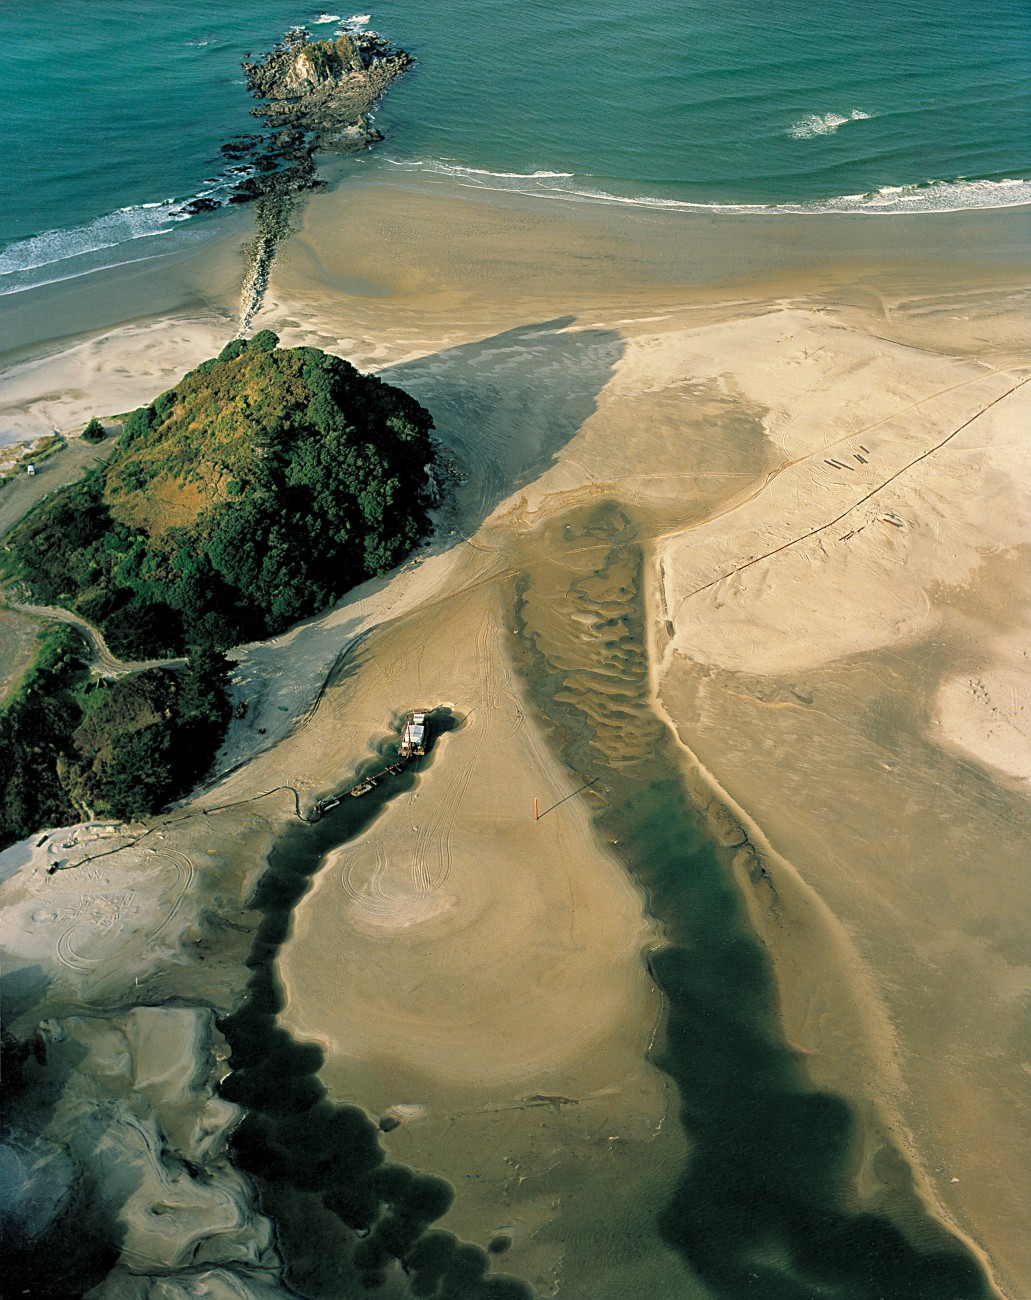 """At Mangawhai, the harbour entrance historically lay beside a bushclad headland, but from the mid-1970s sand started to clog this channel, and a new, unstable entrance formed to the south where the sea had breached sheltering with dozens of pieces of heavy equipment in an operation they dubbed """"the big dig."""" When that effort proved unsuccessful, they used a dredge to wall off the unwanted southern entrance."""